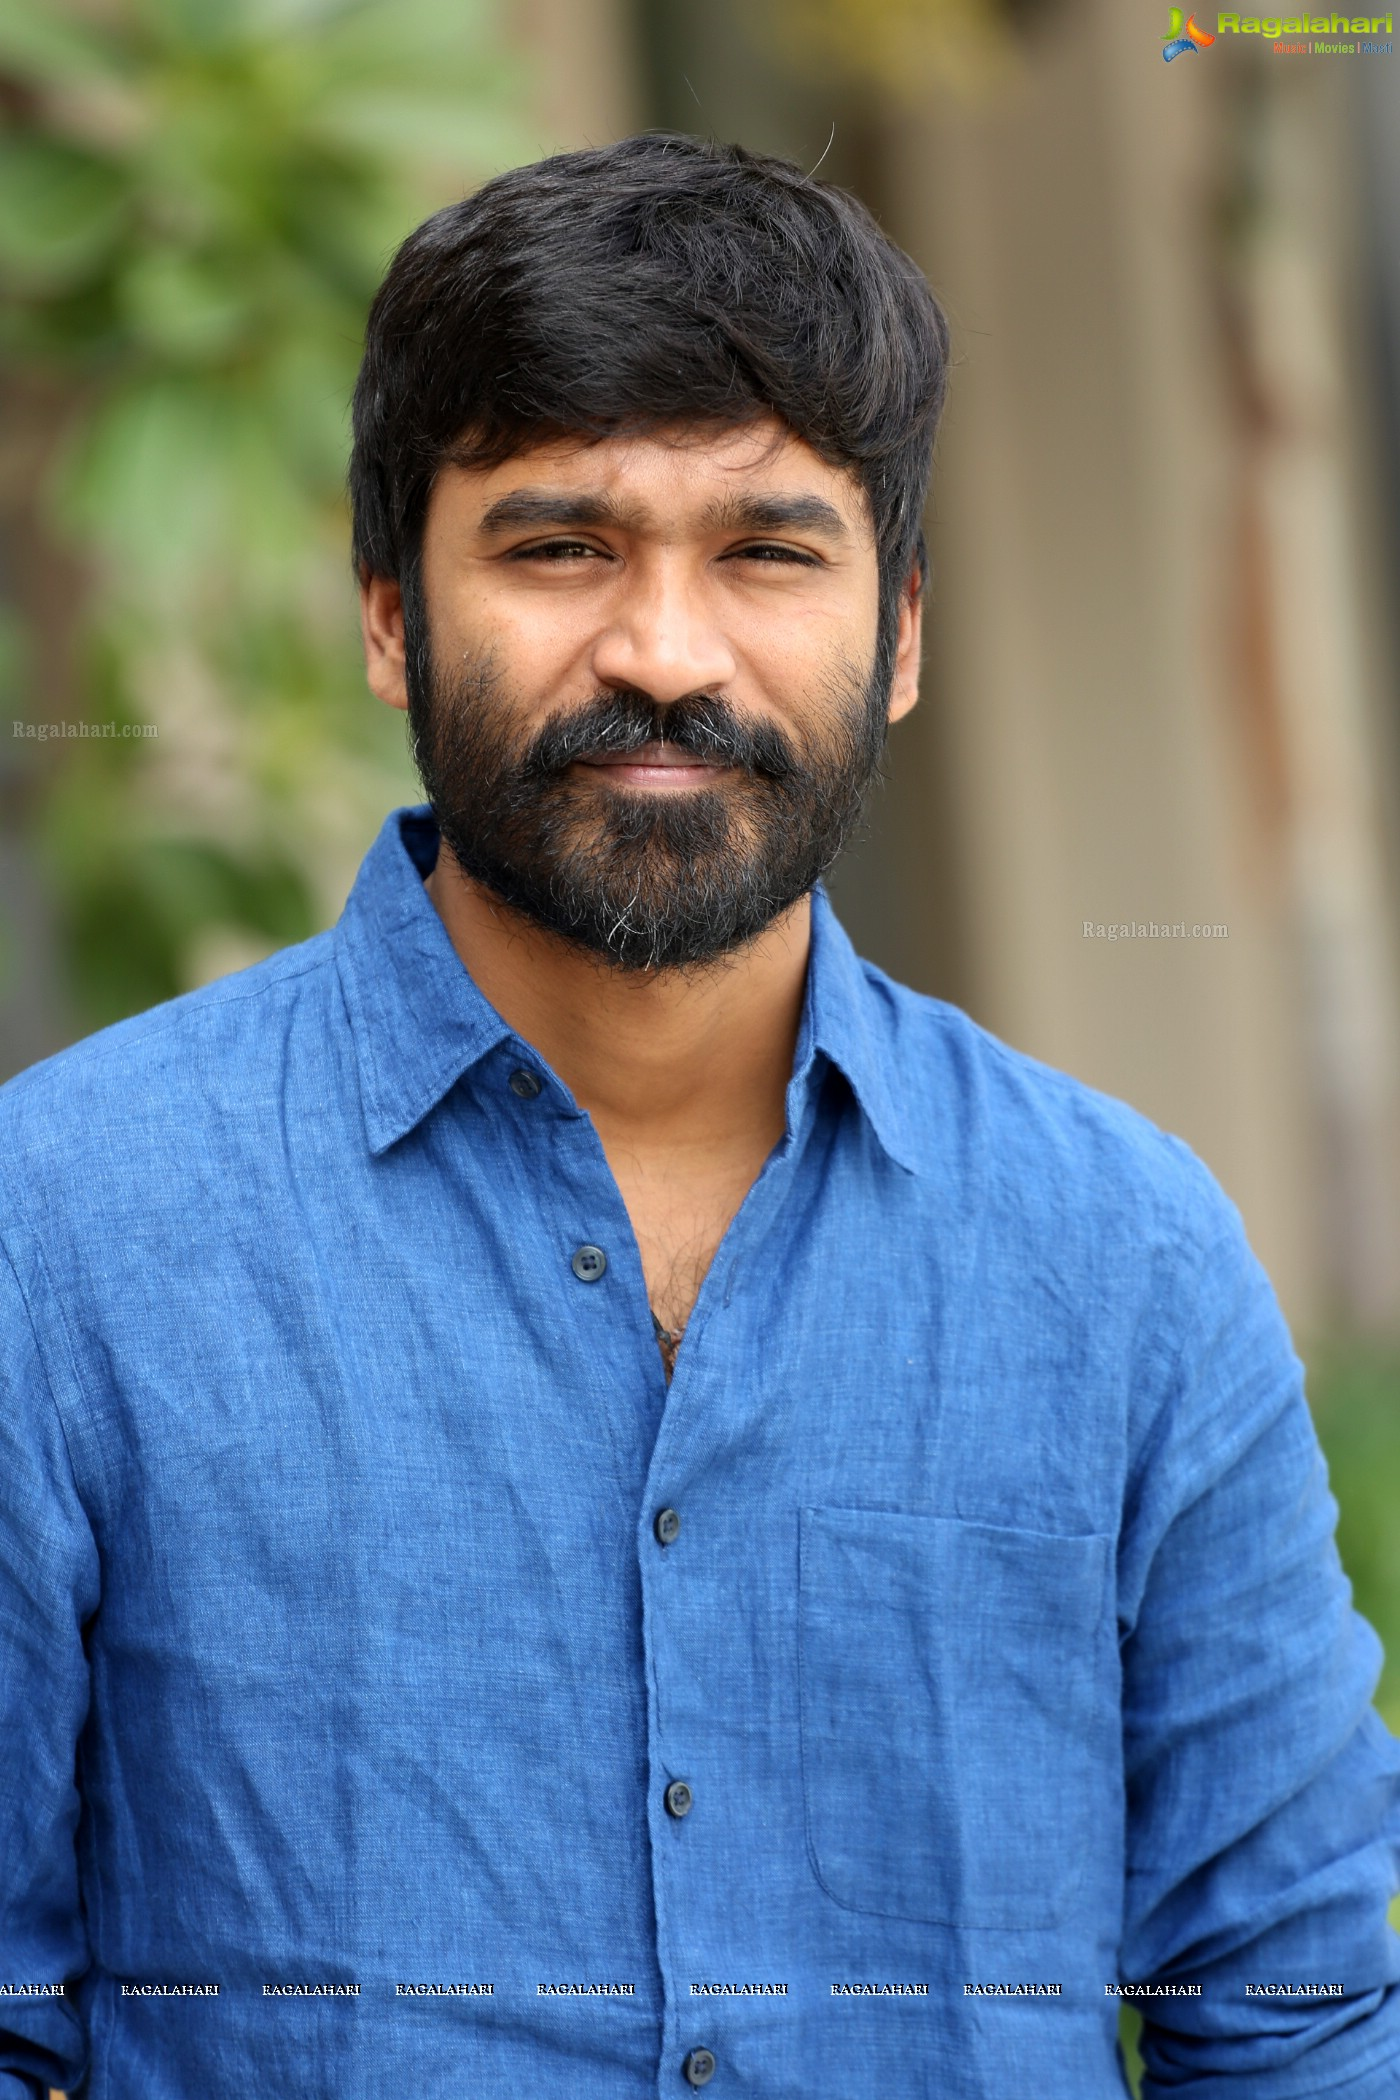 dhanush (posters) image 16 | latest tollywood actor photos,images